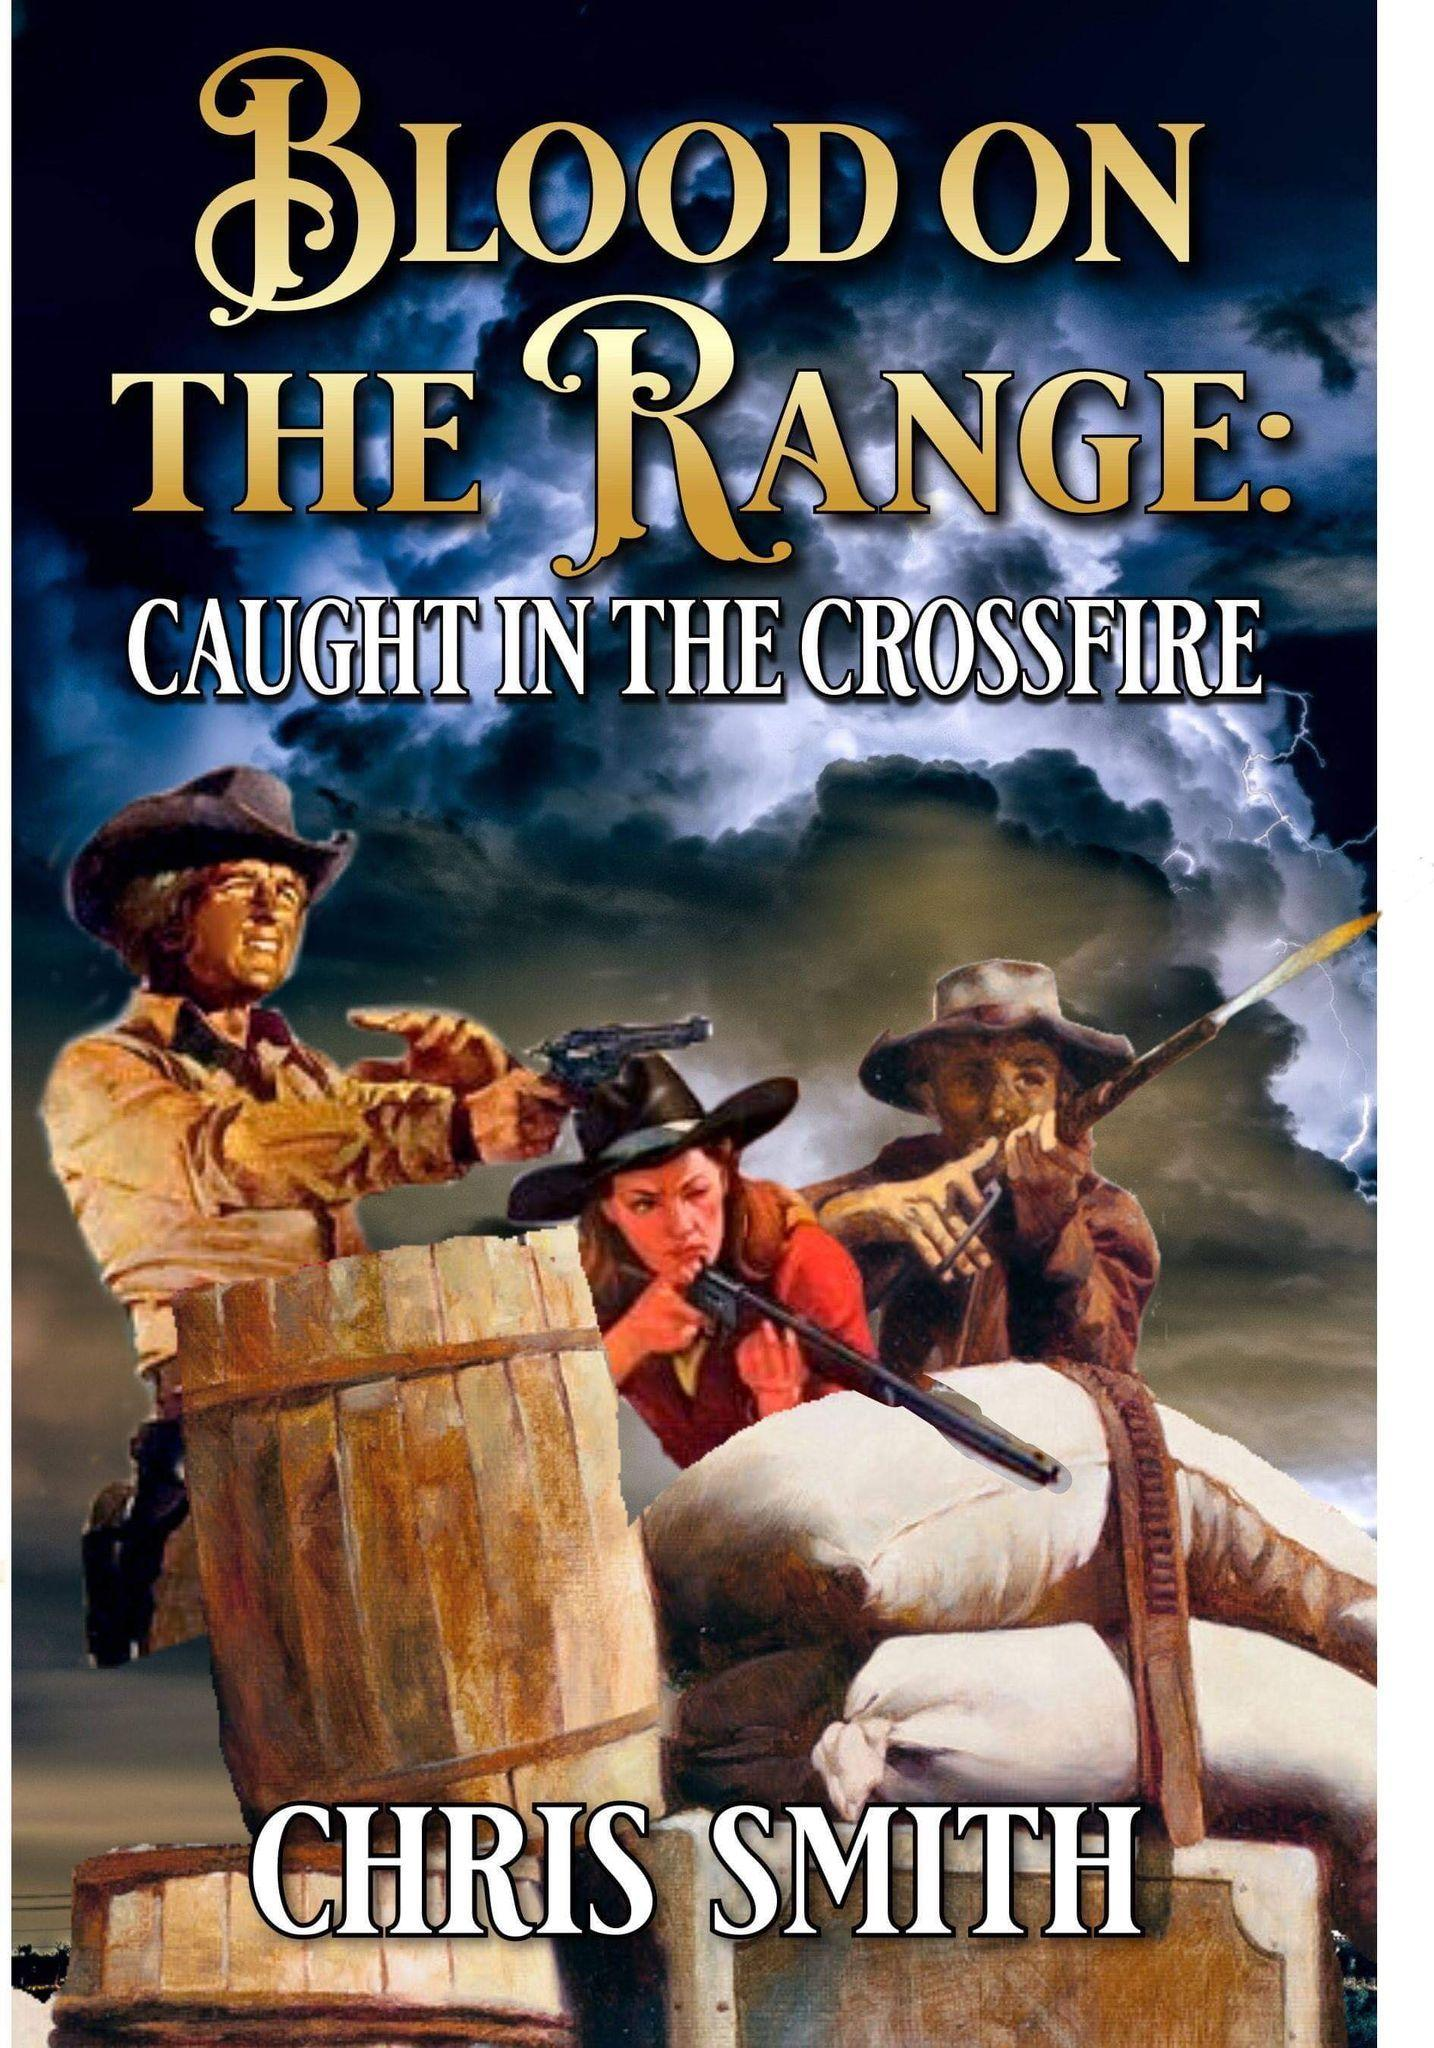 Blood On The Range: Caught In The Crossfire's Ebook Image